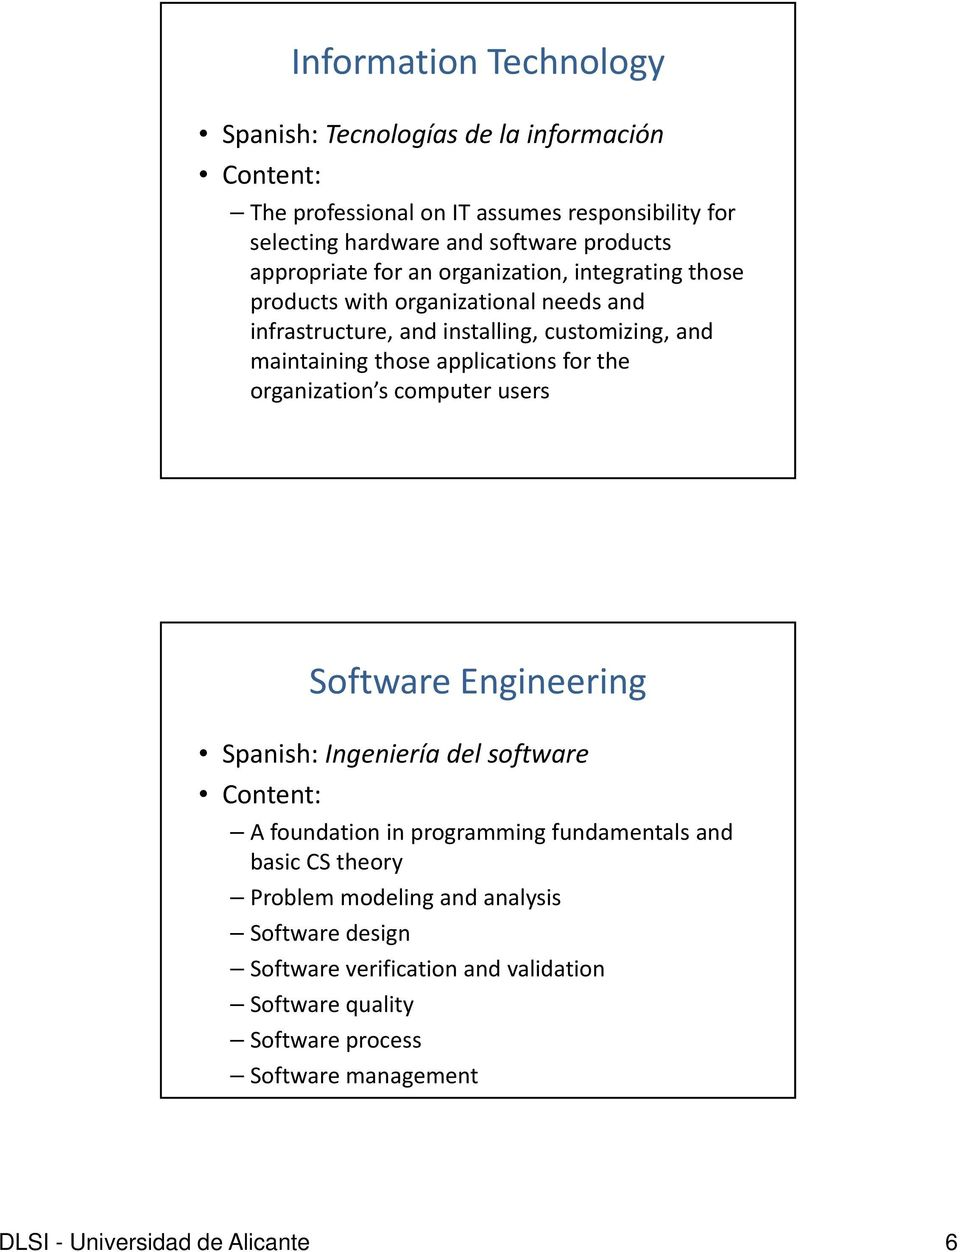 applications for the organization s computer users Software Engineering Spanish: Ingeniería del software Content: A foundation in programming fundamentals and basic